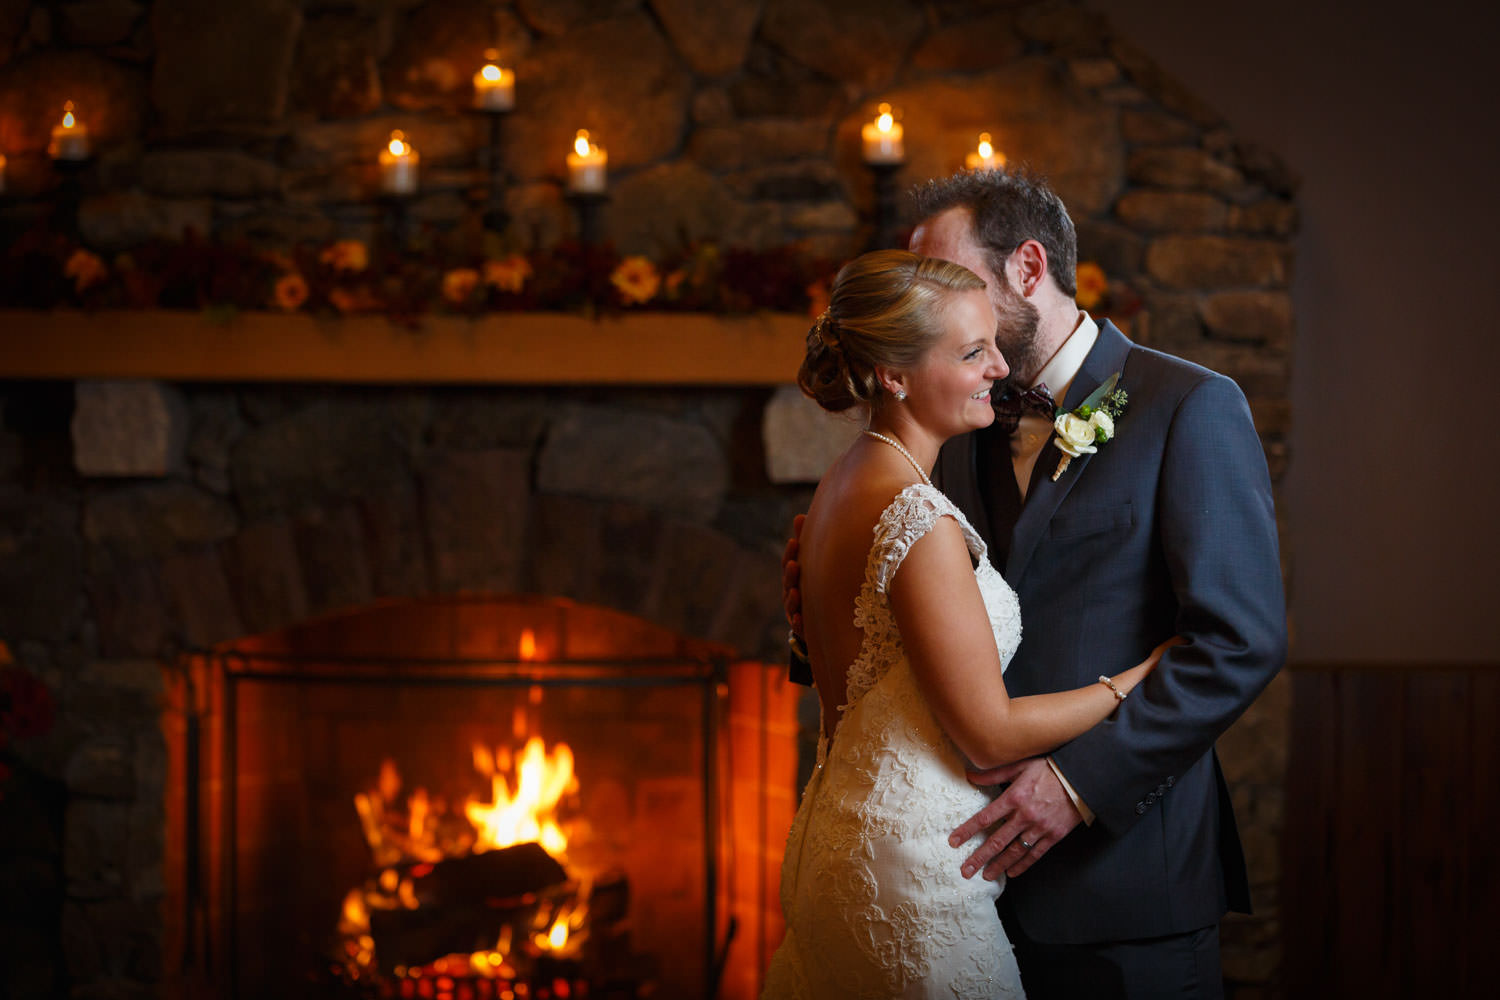 Bride and groom smiling together with fireplace and fire in the background